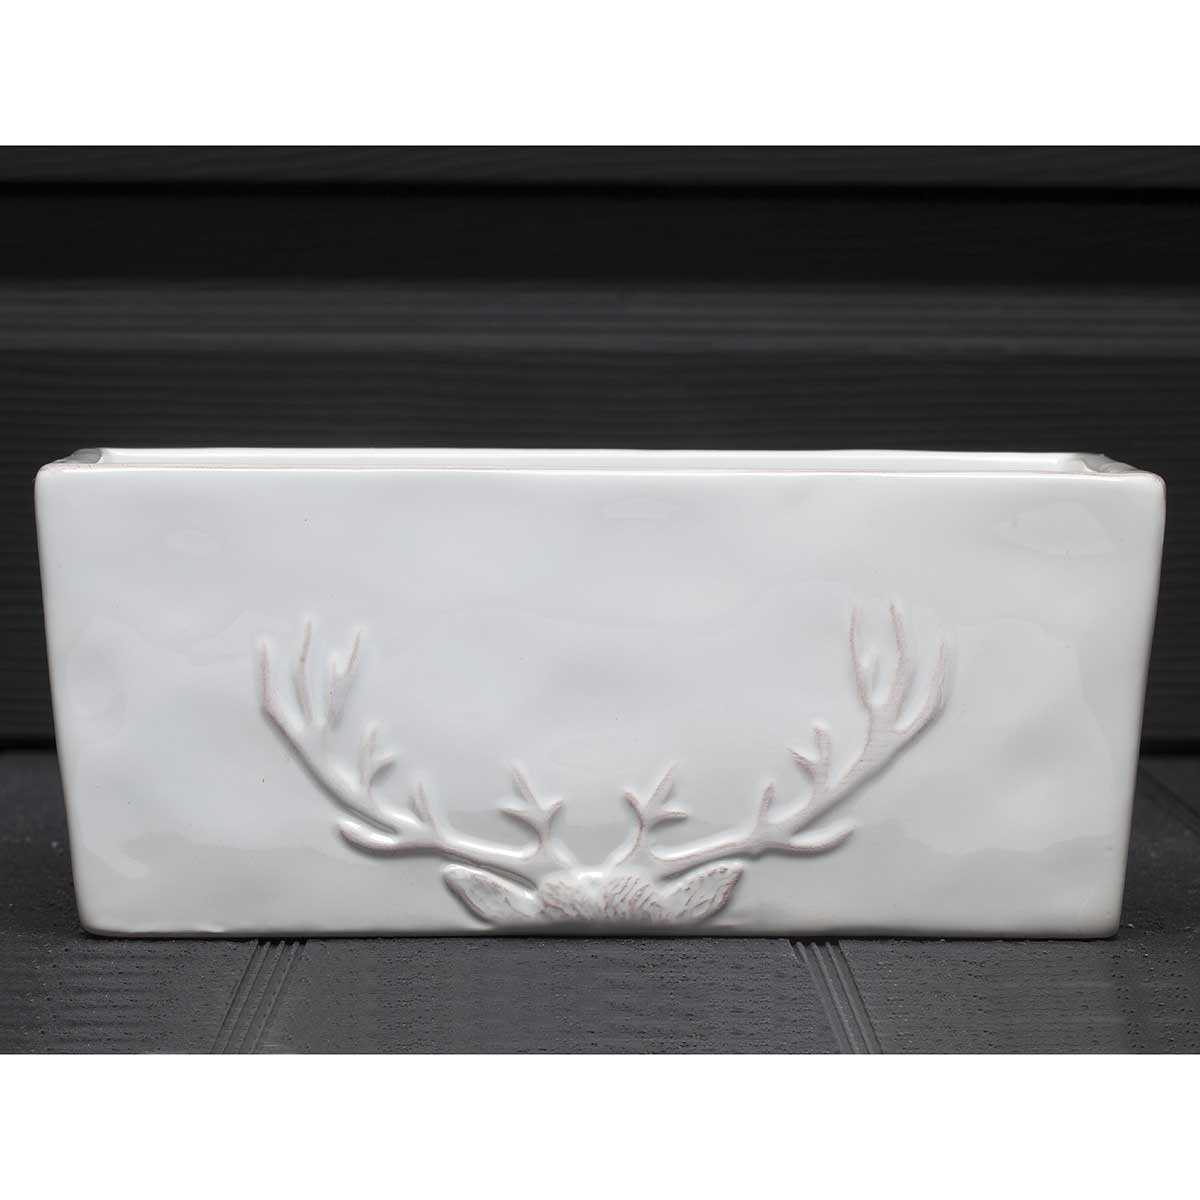 "WHITE STAG RECTANGULAR BOWL 8.5""X3.5""X4"""